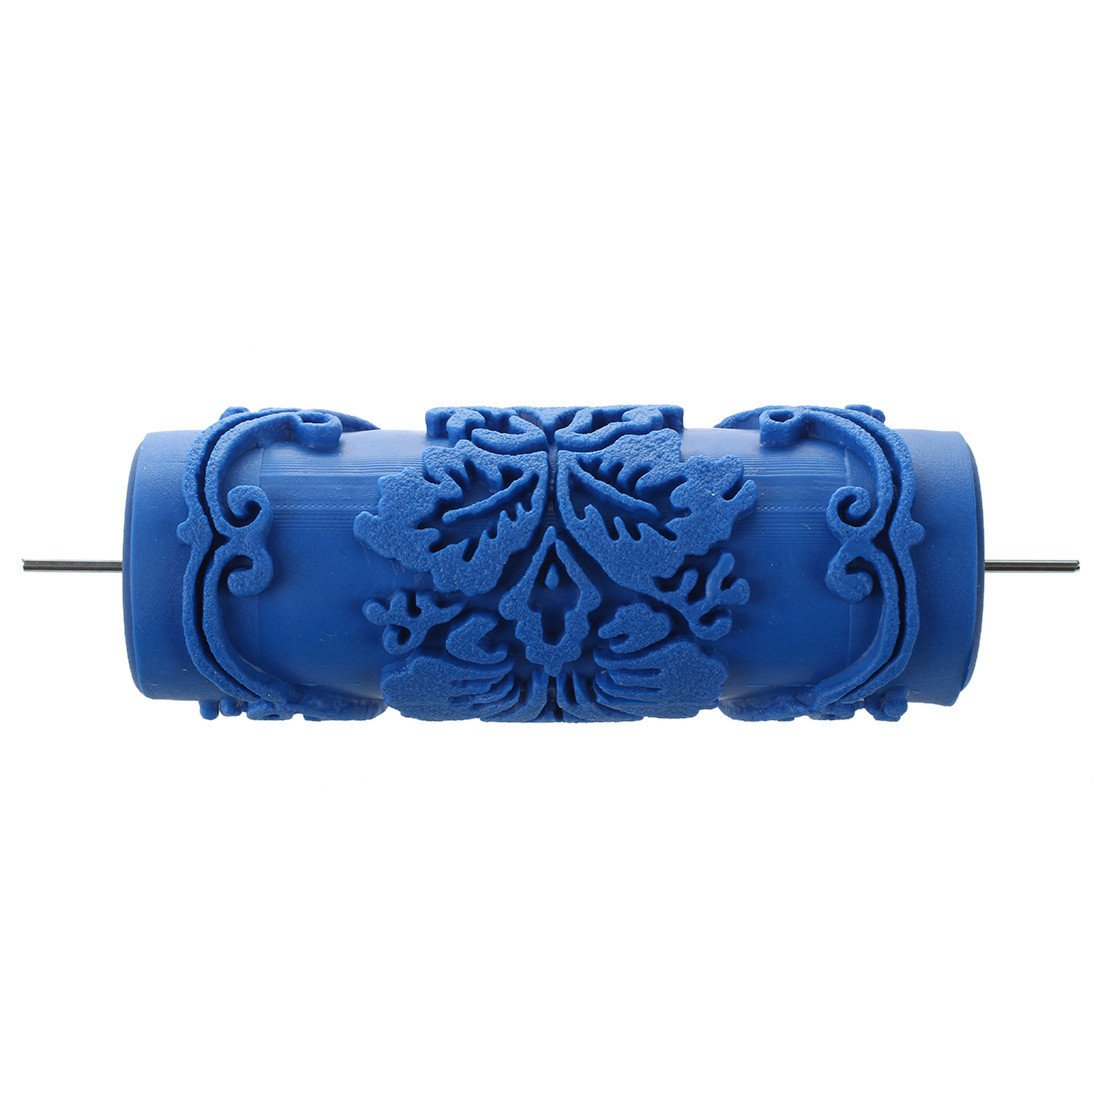 Roller - SODIAL(R)Paint Roller with decorative motifs for Machine Designs flowers / blue 15 cm